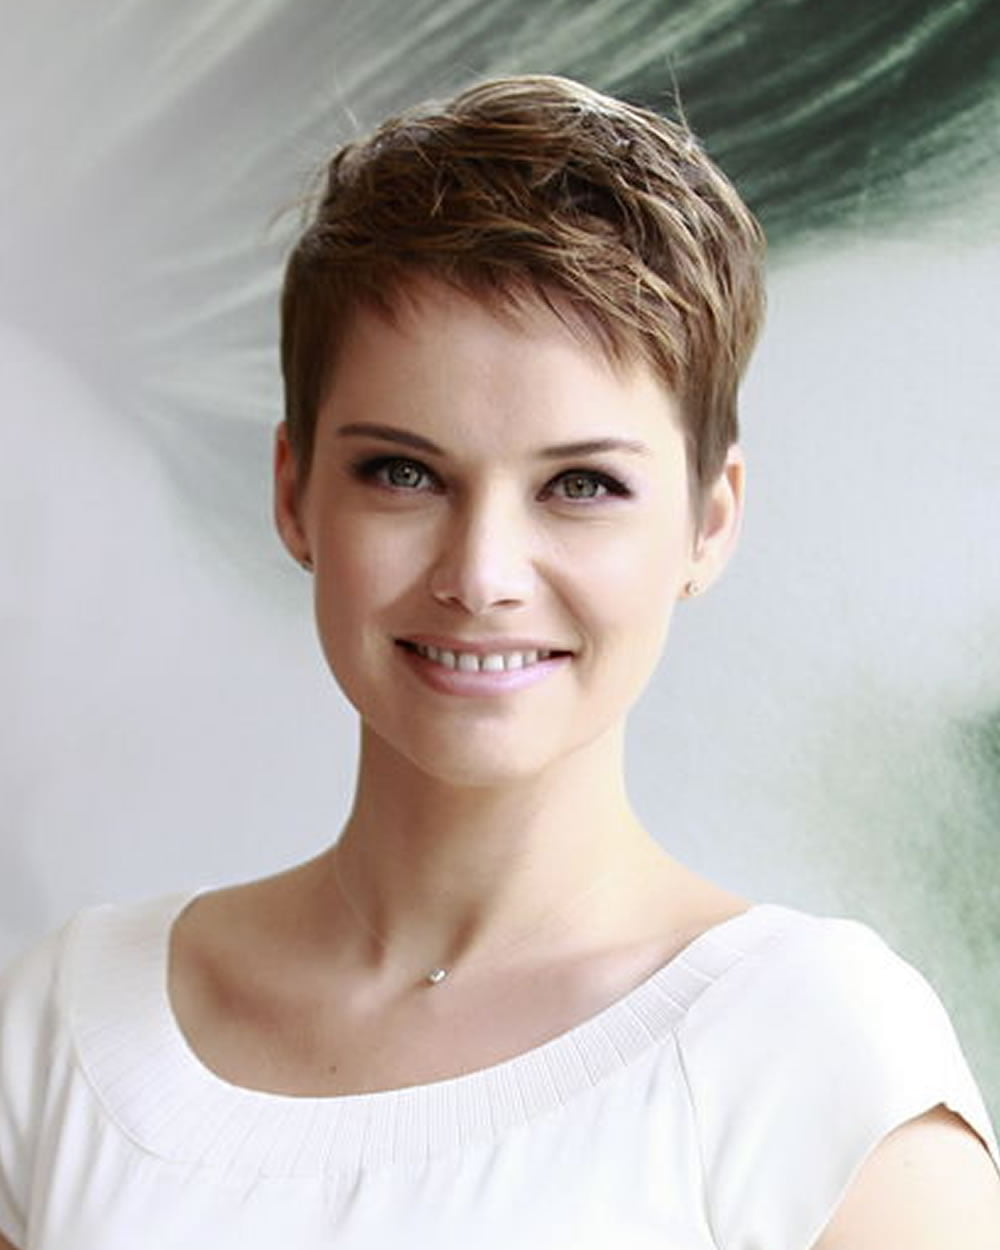 21 Trendy Short Haircut Images and Pixie Hairstyles You'll ... - photo #6